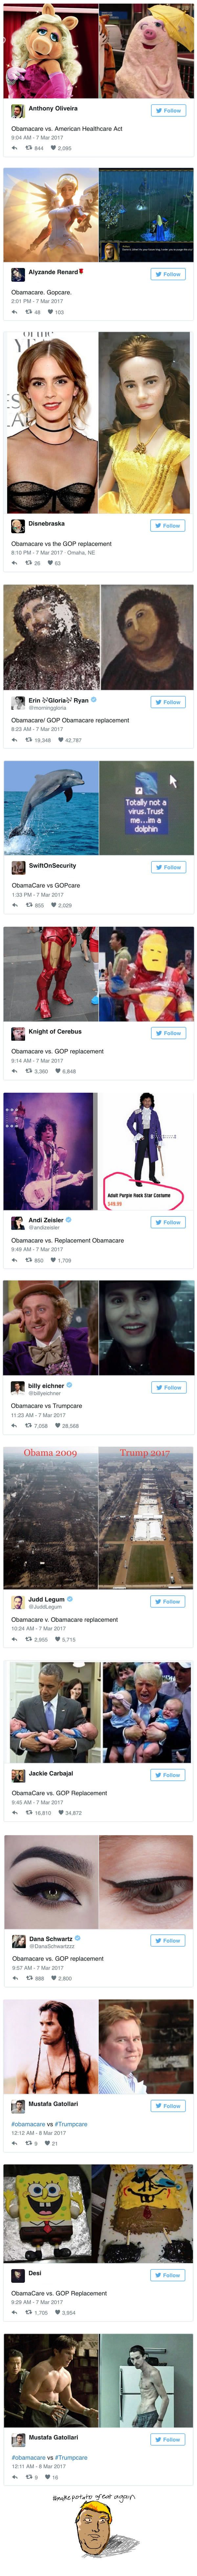 """Republicans Are Calling Trumpcare """"Obamacare Lite,"""" And These Memes Sum Up Precisely What That Means"""